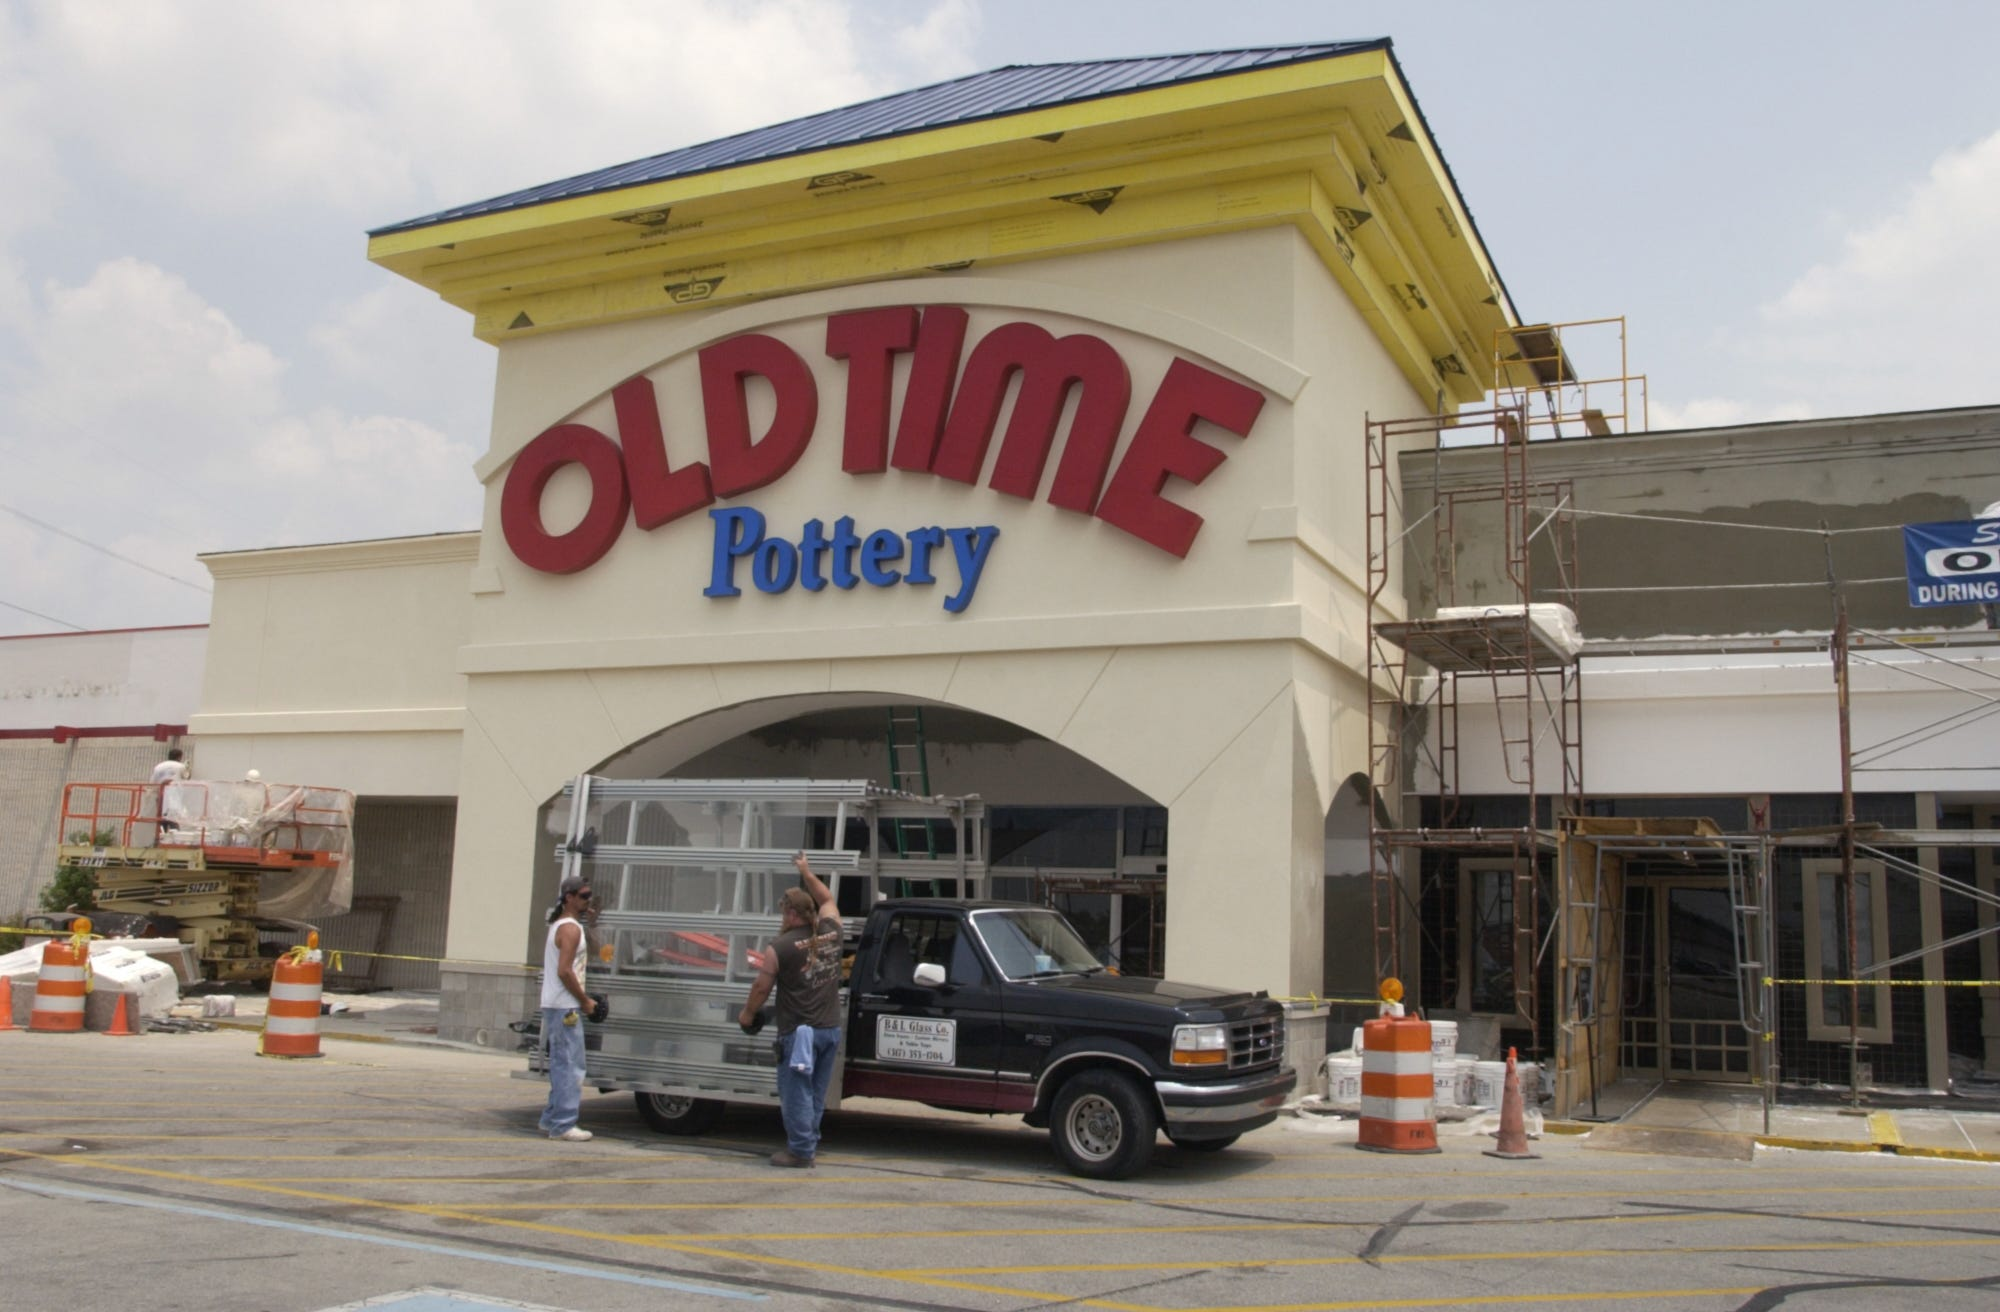 Old Time Pottery to file for bankruptcy, close stores due to pandemic